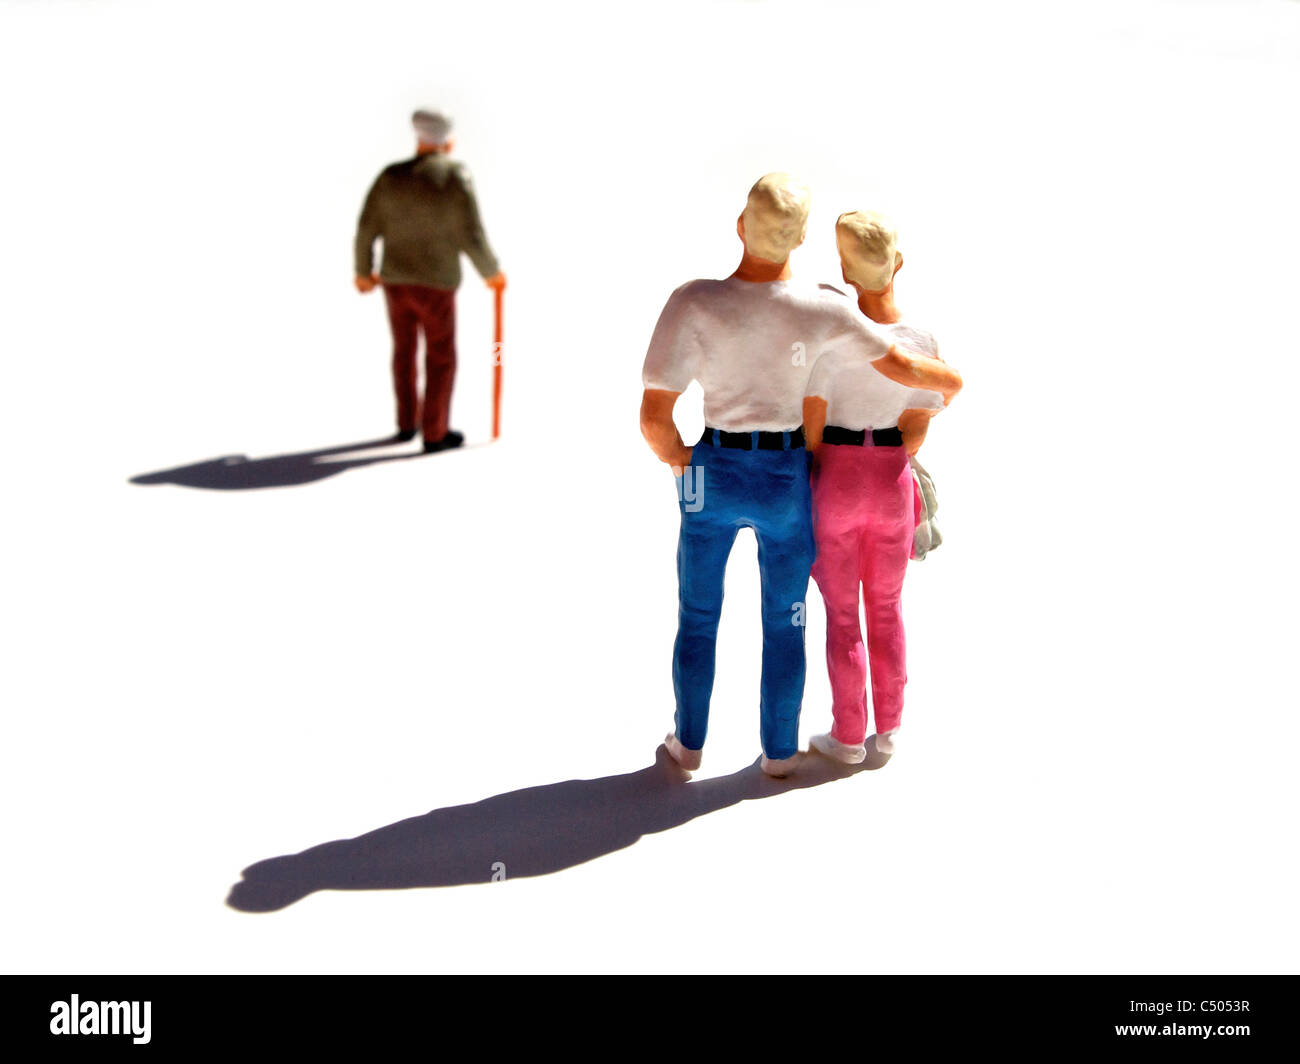 Figurines, symbolic separation. - Stock Image